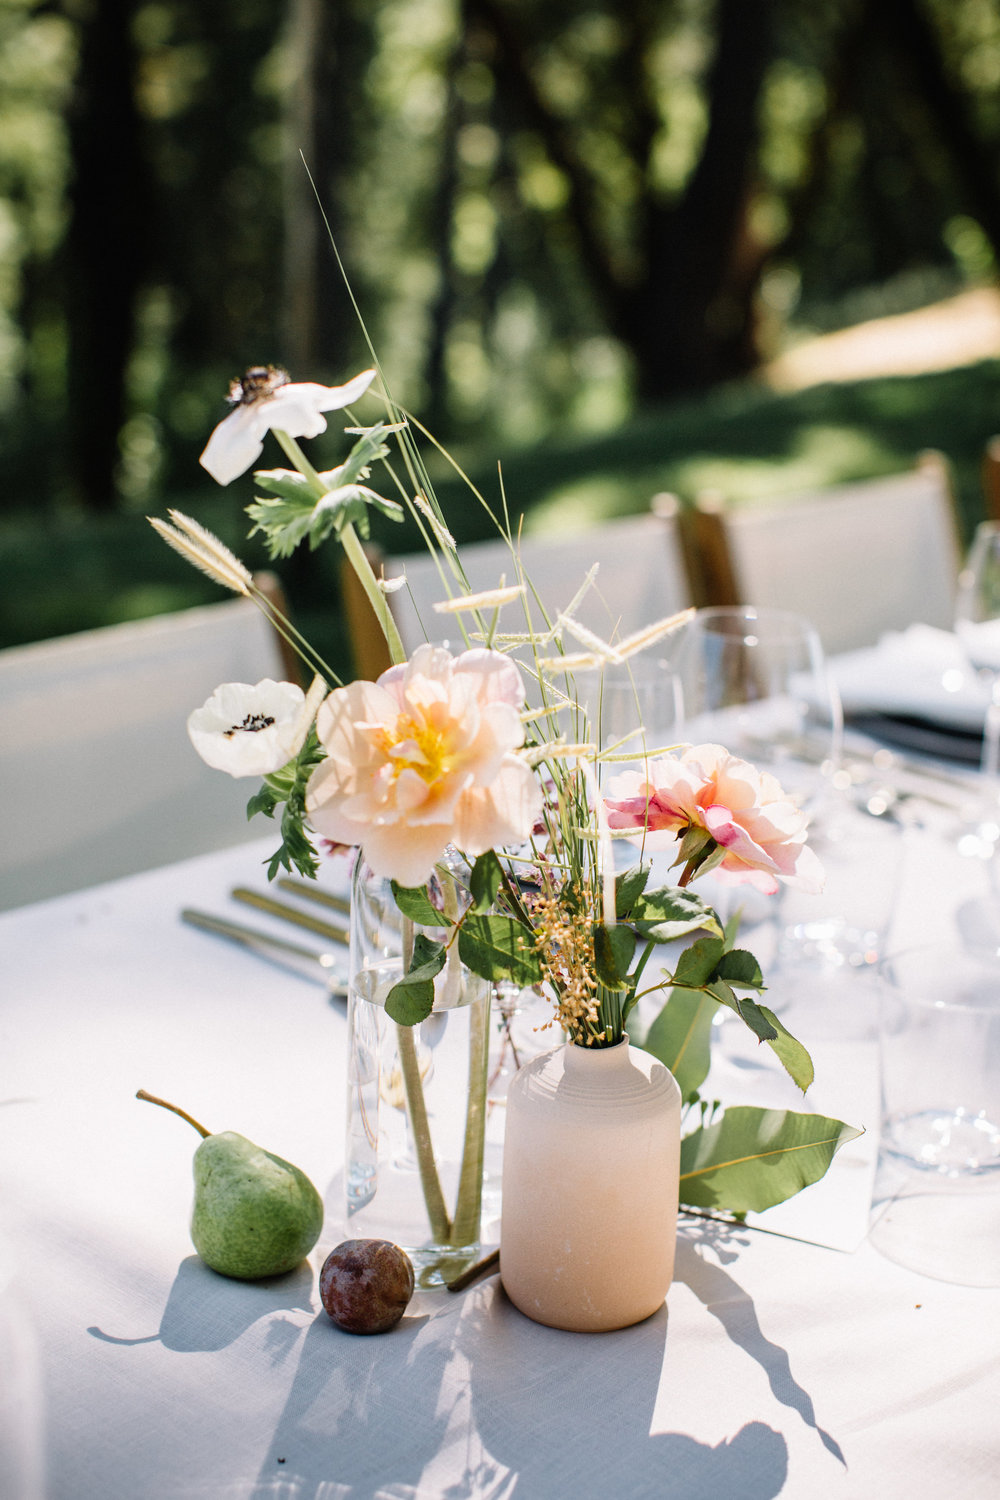 Ceramic bud vases and clusters of Summer fruit and flowers by Venn Floral at Wild Iris Retreat photographed by Lucille Lawrence in Philo, California.